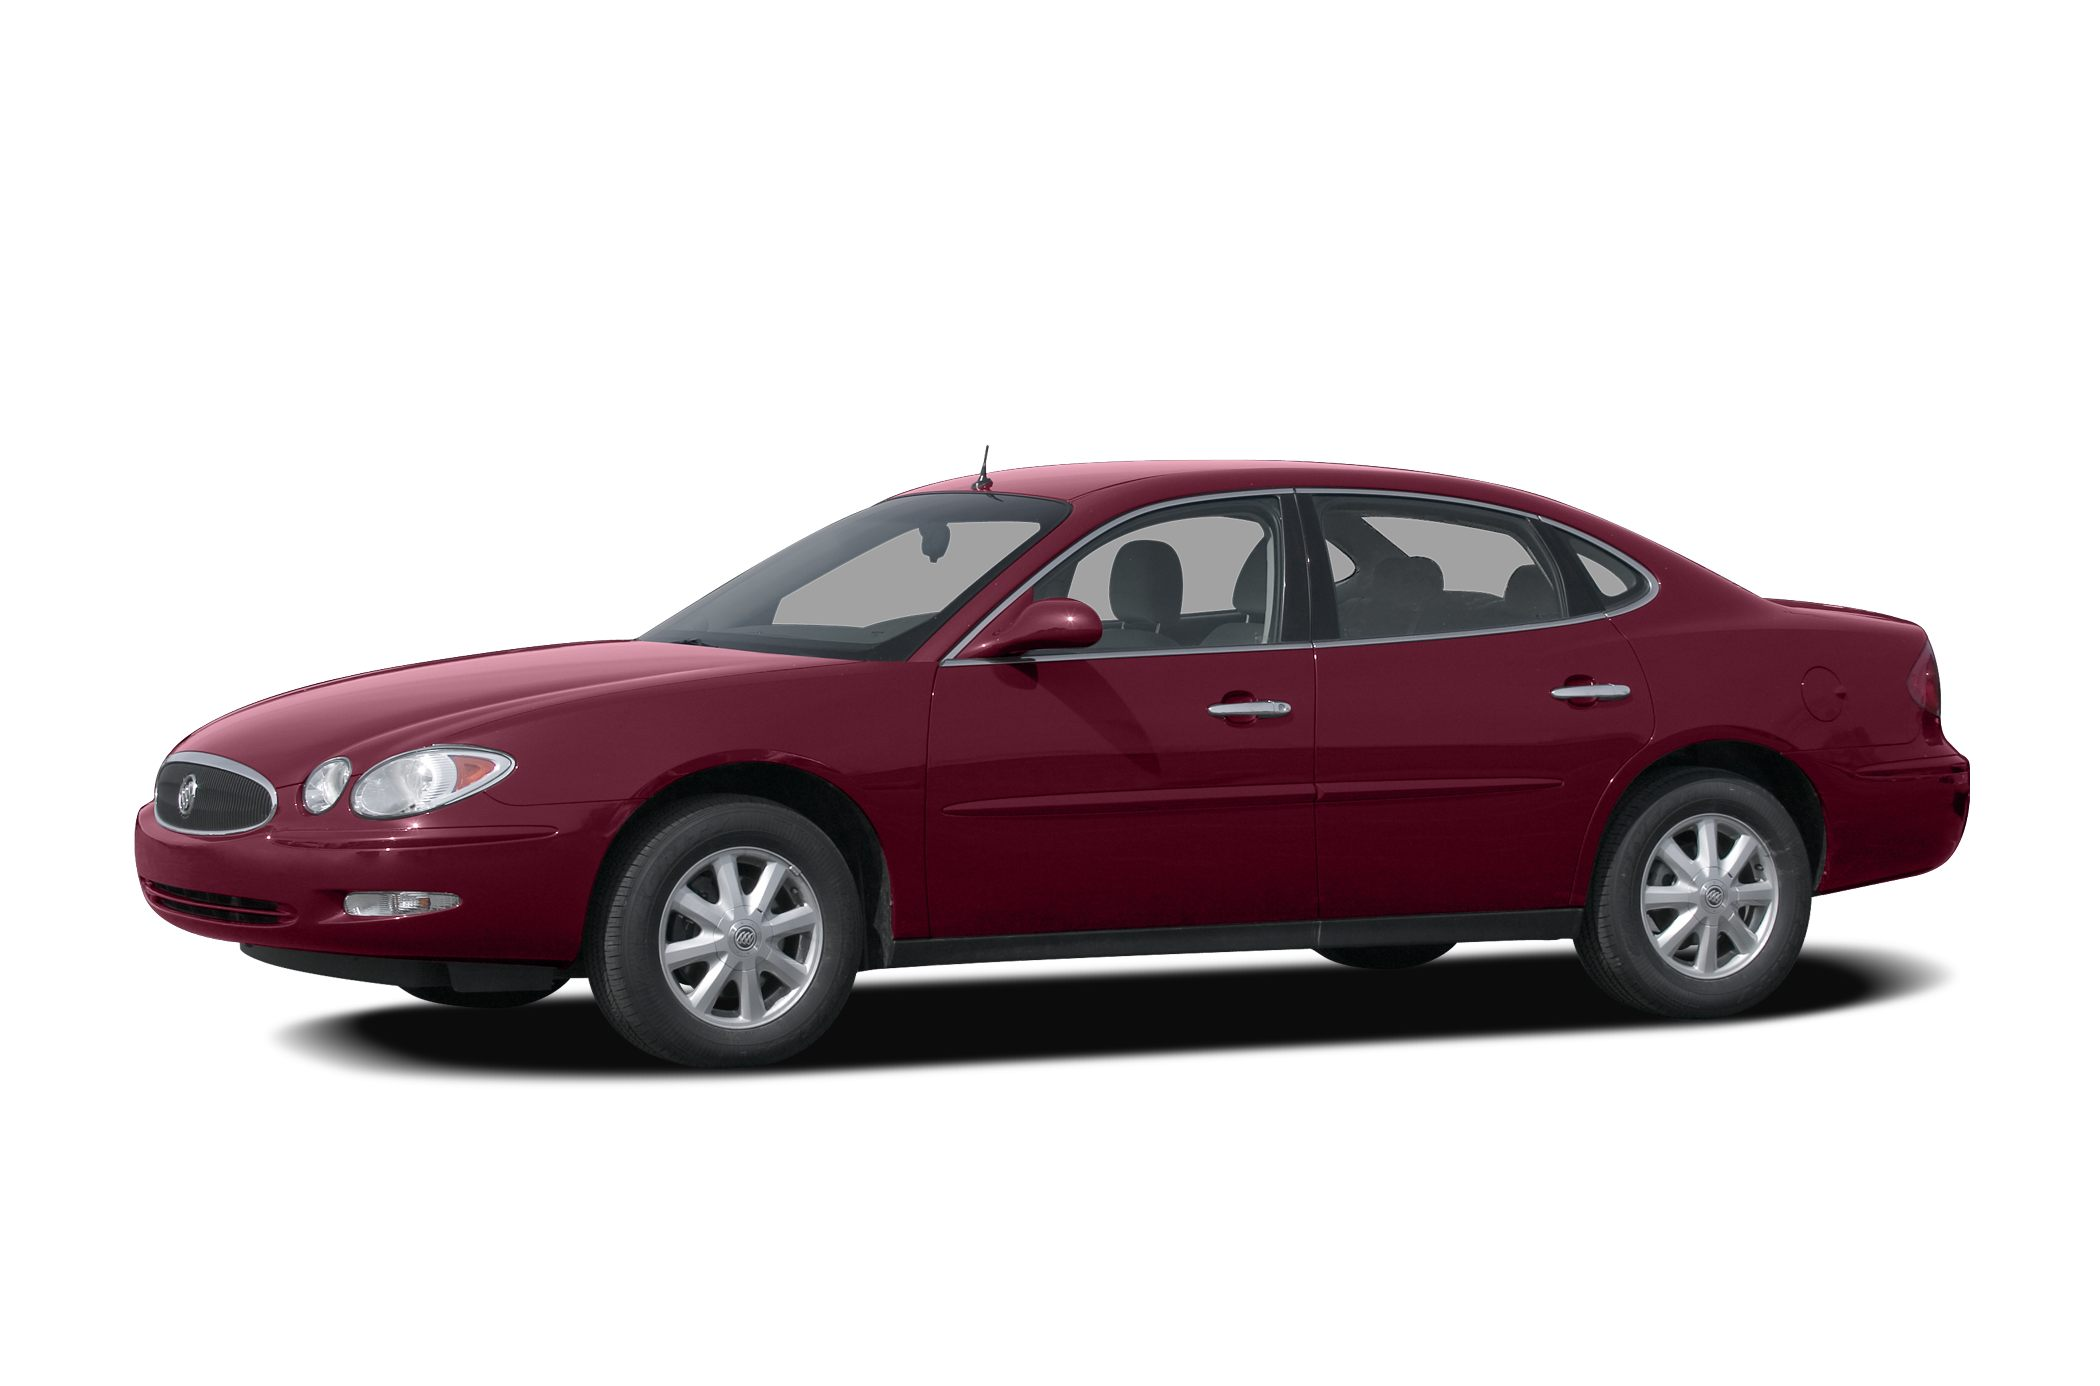 2007 Buick LaCrosse CXL Sedan for sale in Memphis for $9,500 with 123,297 miles.